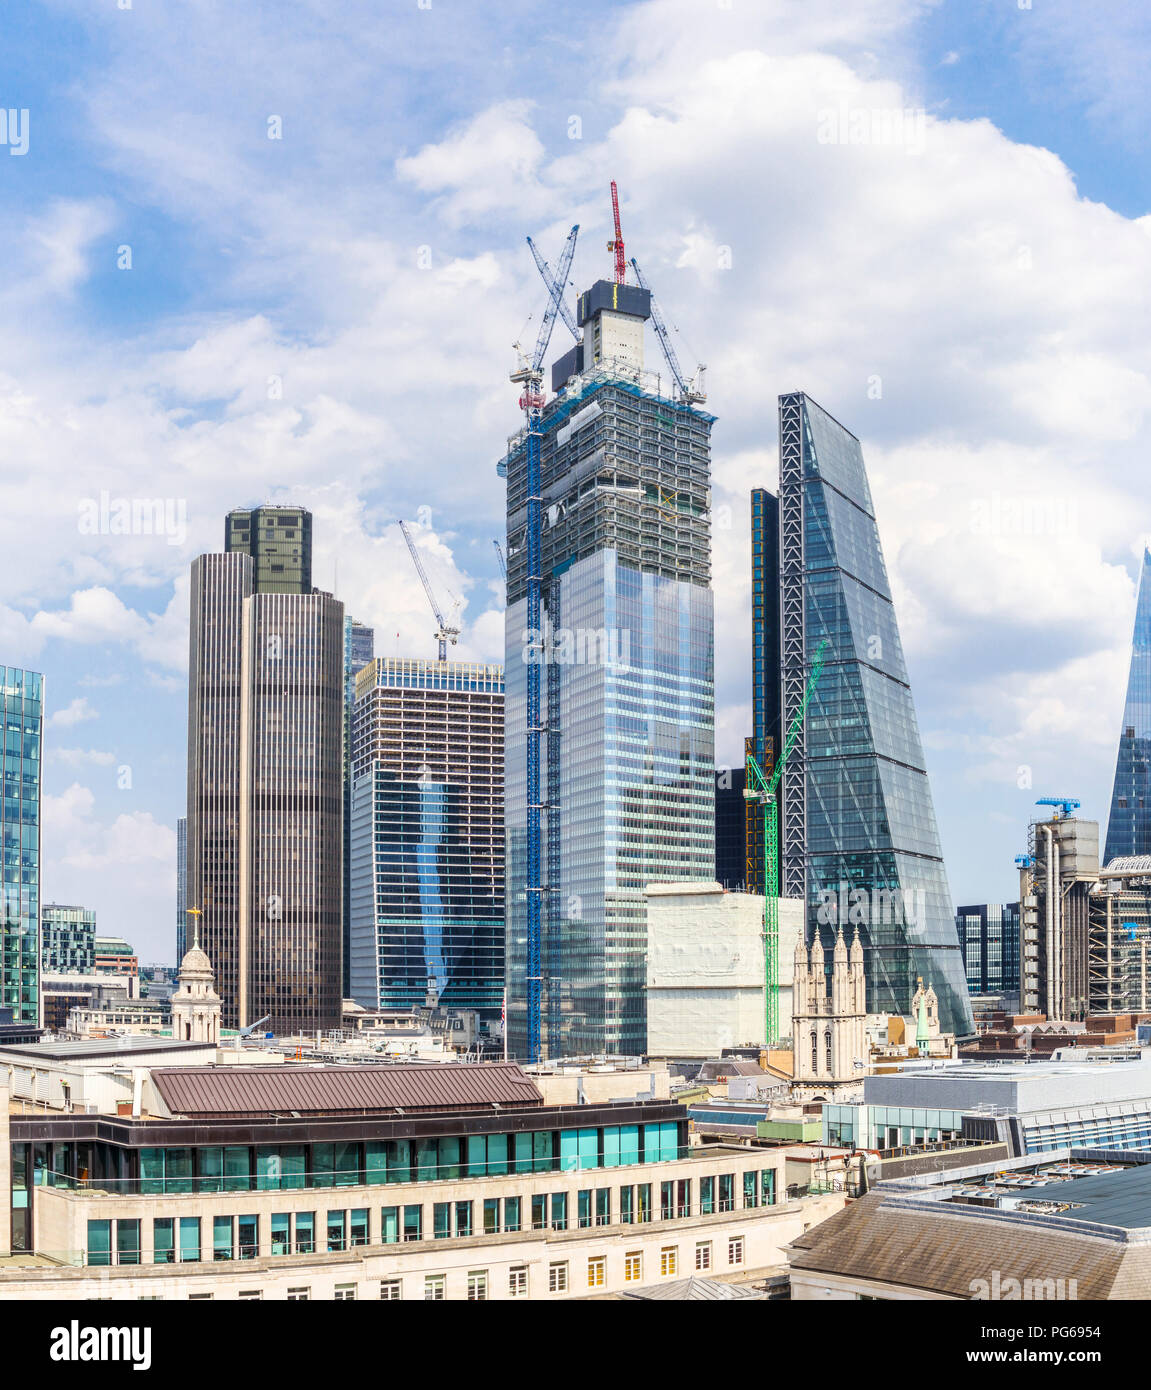 City of London changing skyline: 22 and 100 Bishopsgate under construction between Tower 42 and the Cheesegrater, financial and insurance district Stock Photo